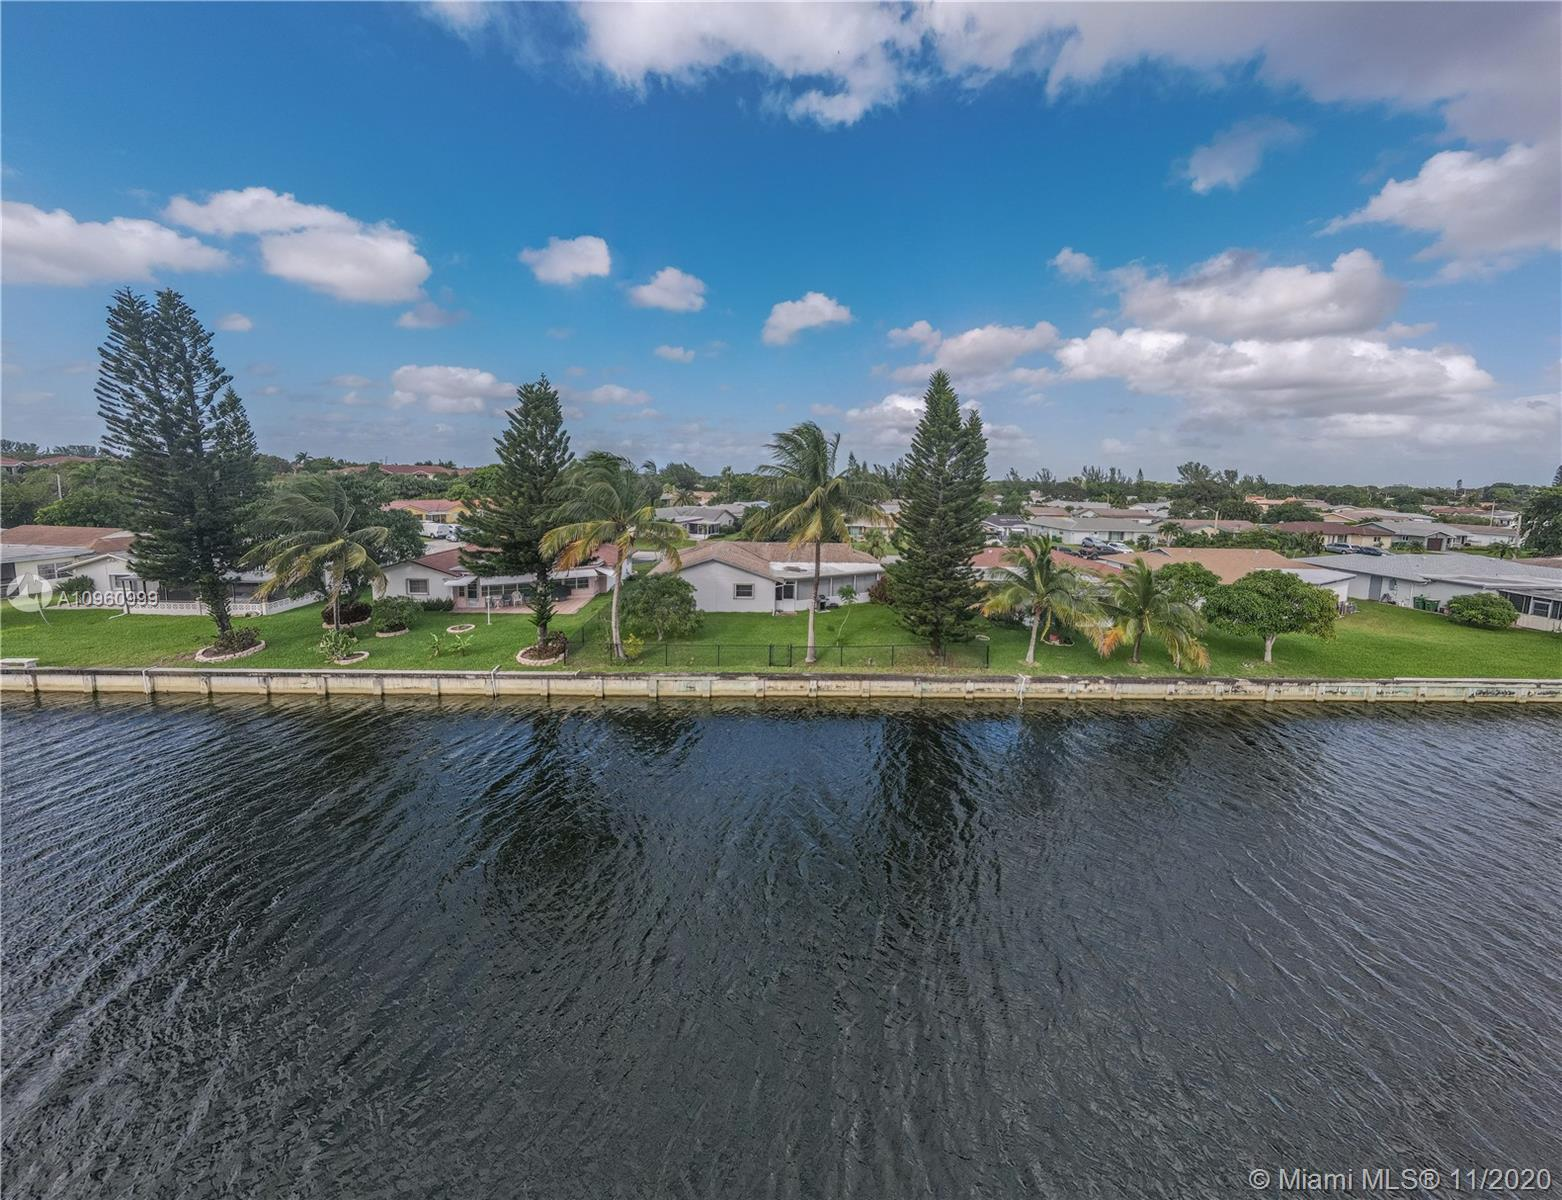 Come enjoy the views of this fully updated & immaculate waterfront home in this ALL AGES community.  3 bedrooms, 2 baths w/ a larger lot than the average home in Westwood Community. Spacious 2 car garage. Walk into your open floor plan w/ plenty of room for entertaining. Tile & laminate throughout. Updated kitchen. Stainless Steel appliances. Master bedroom has updated walk-in closet w/ built ins. Master bath w/ dual sinks & a walk-in shower. Plenty of windows & lighting. Hurricane Shutters throughout the entire home. Enclosed patio perfect for hosting. Large Backyard overlooks an amazing lake, great for outdoor pets & can fit a pool. Lots of privacy w/ no neighbors behind. NEW A/C, 2019. NEW Water Heater, 2020. Extremely low HOA includes common areas, landscaping & community pool.